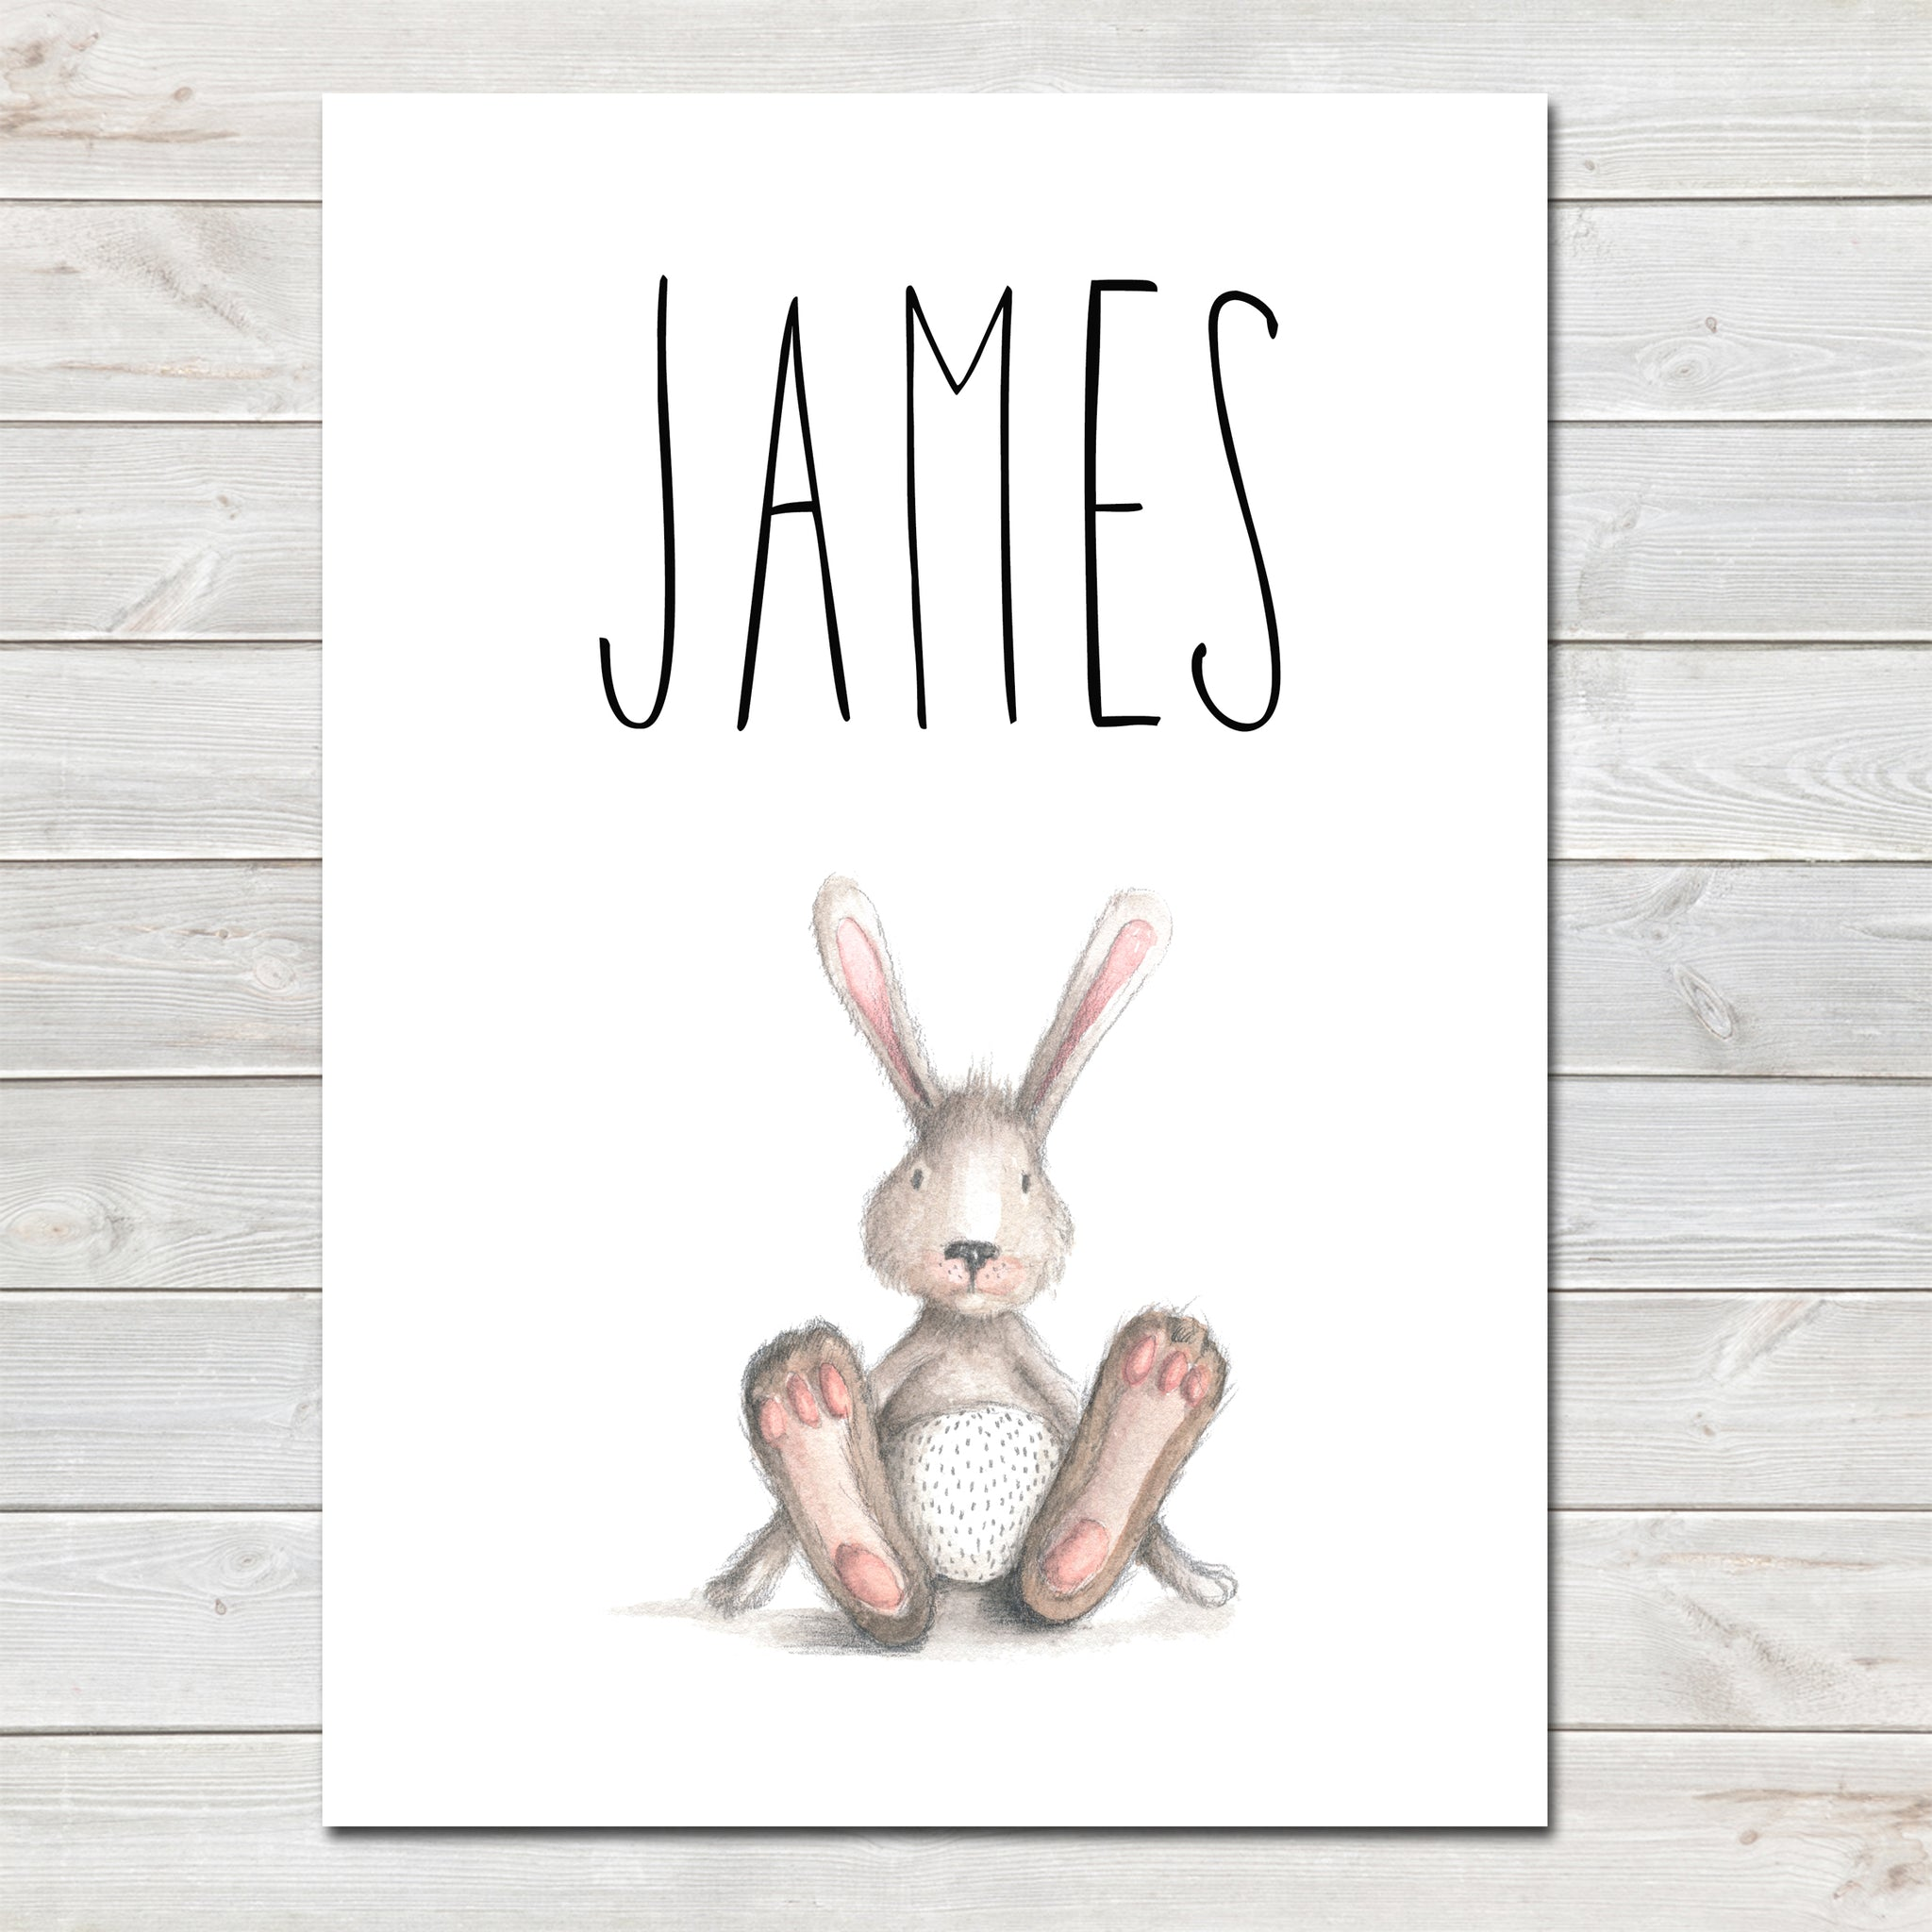 Bunny Rabbit / Hare Children's Poster, Personalised White Nursery Print- A4